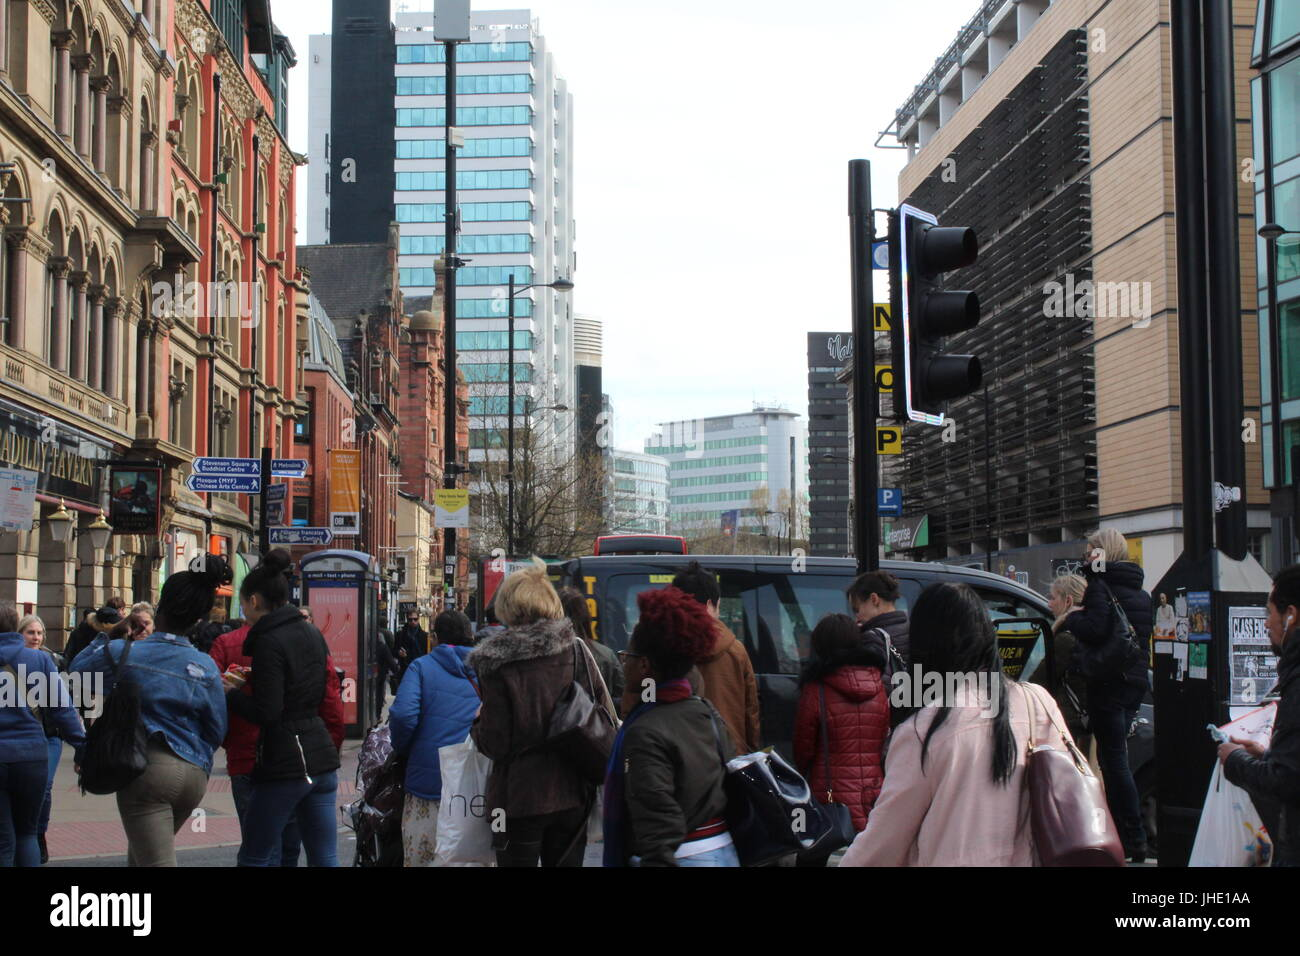 Crowded Street in Manchester City Centre, April 2017 - Stock Image